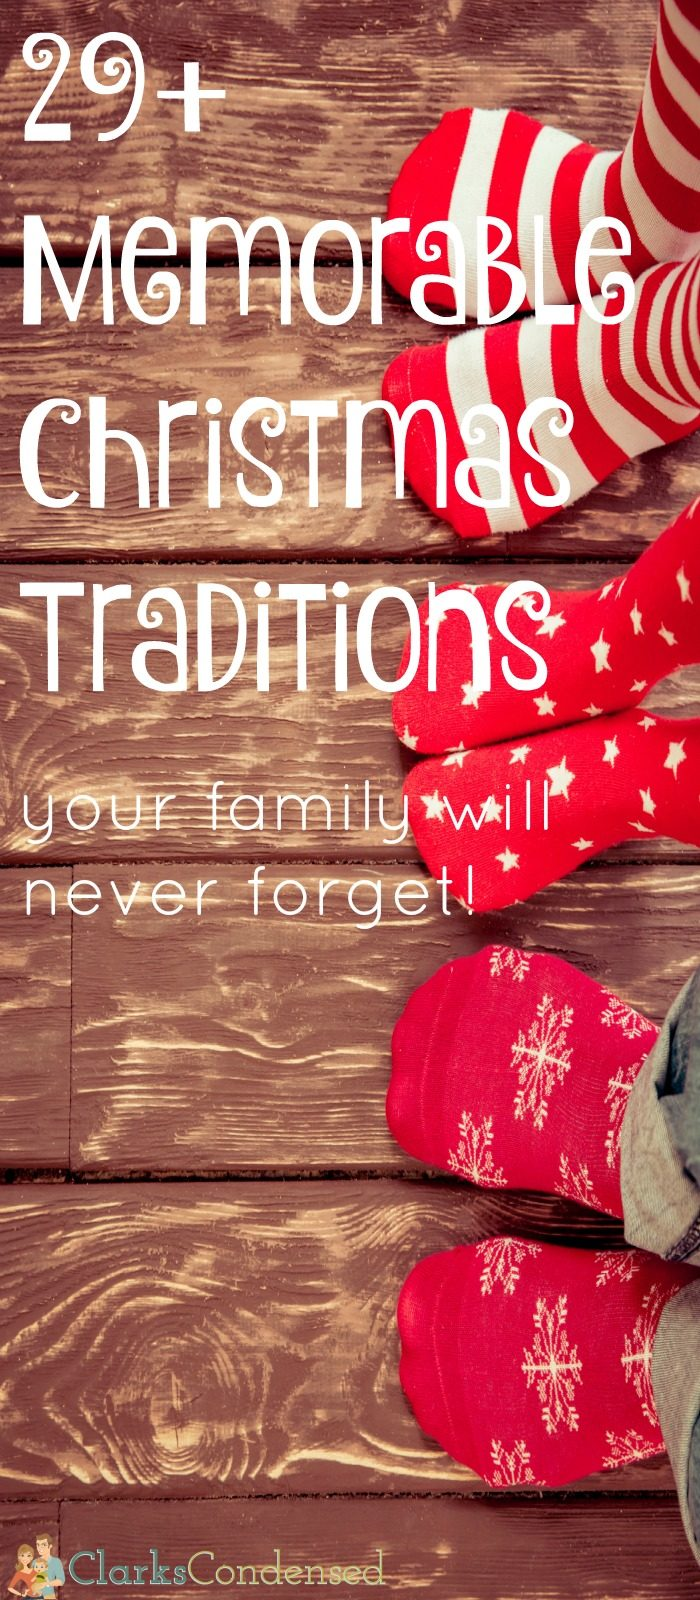 30+ Christmas Traditions for Families